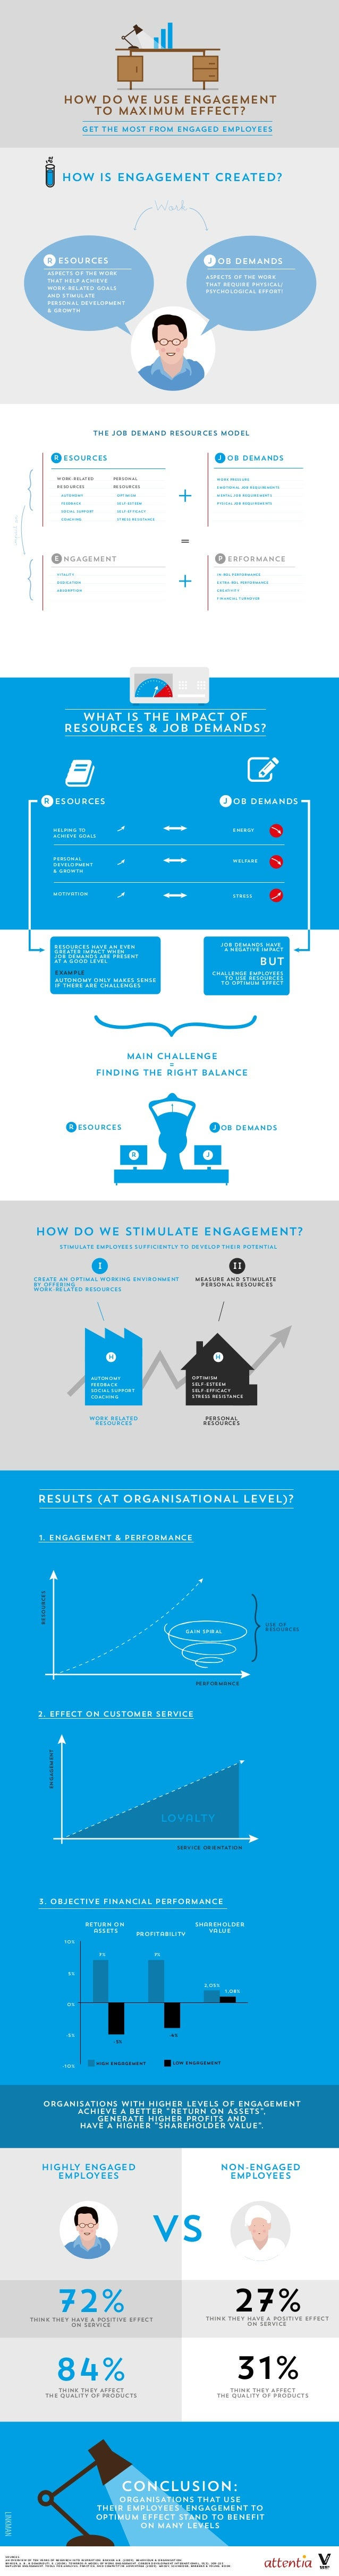 How dO WE USE ENGAGEMENT TO MAXIMUM EFFECT? GET THE MOST FROM ENGAGED EMPLOYEES  hOW IS ENGAGEMENT CREATED?  Work R ESOURC...